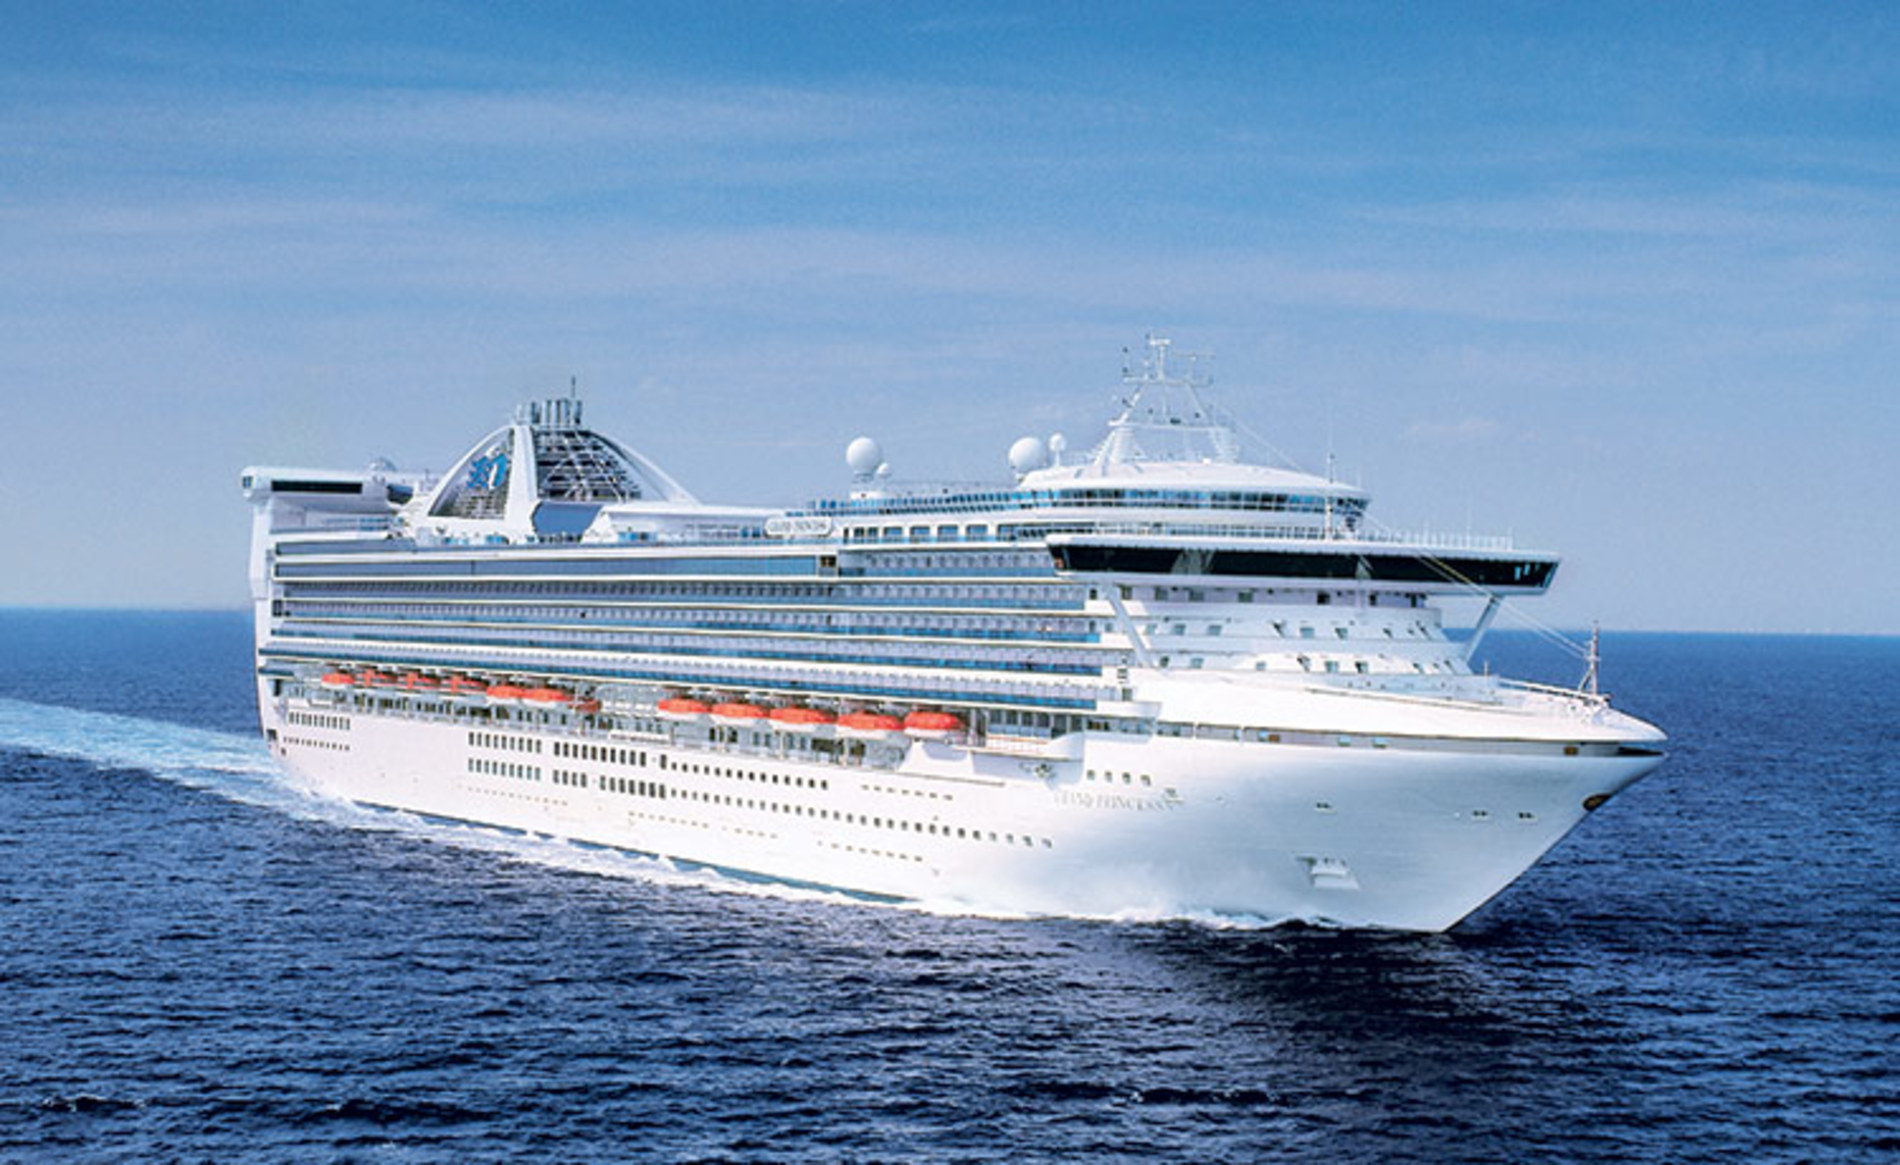 A photo of the Golden Princess cruise ship